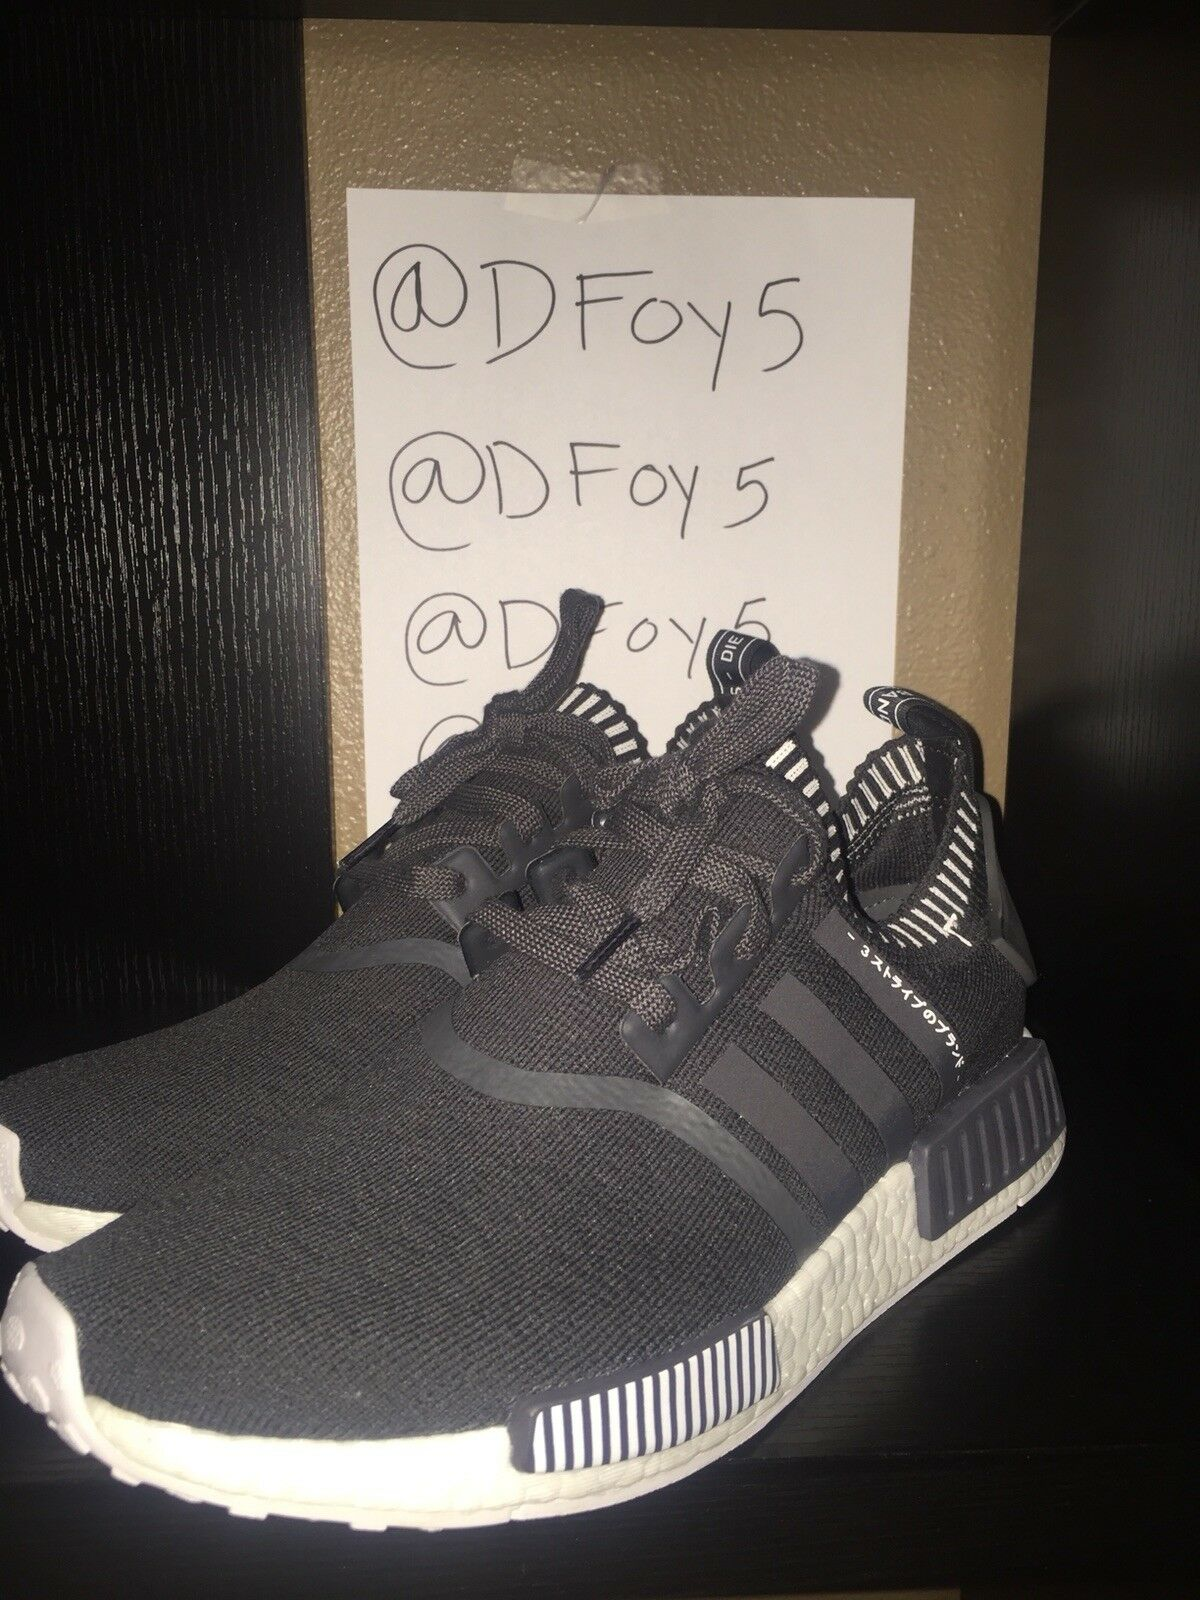 ADIDAS NMD_R1 PK PRIMEKNIT JAPAN BOOST DARK GREY WHITE S81849 Price reduction